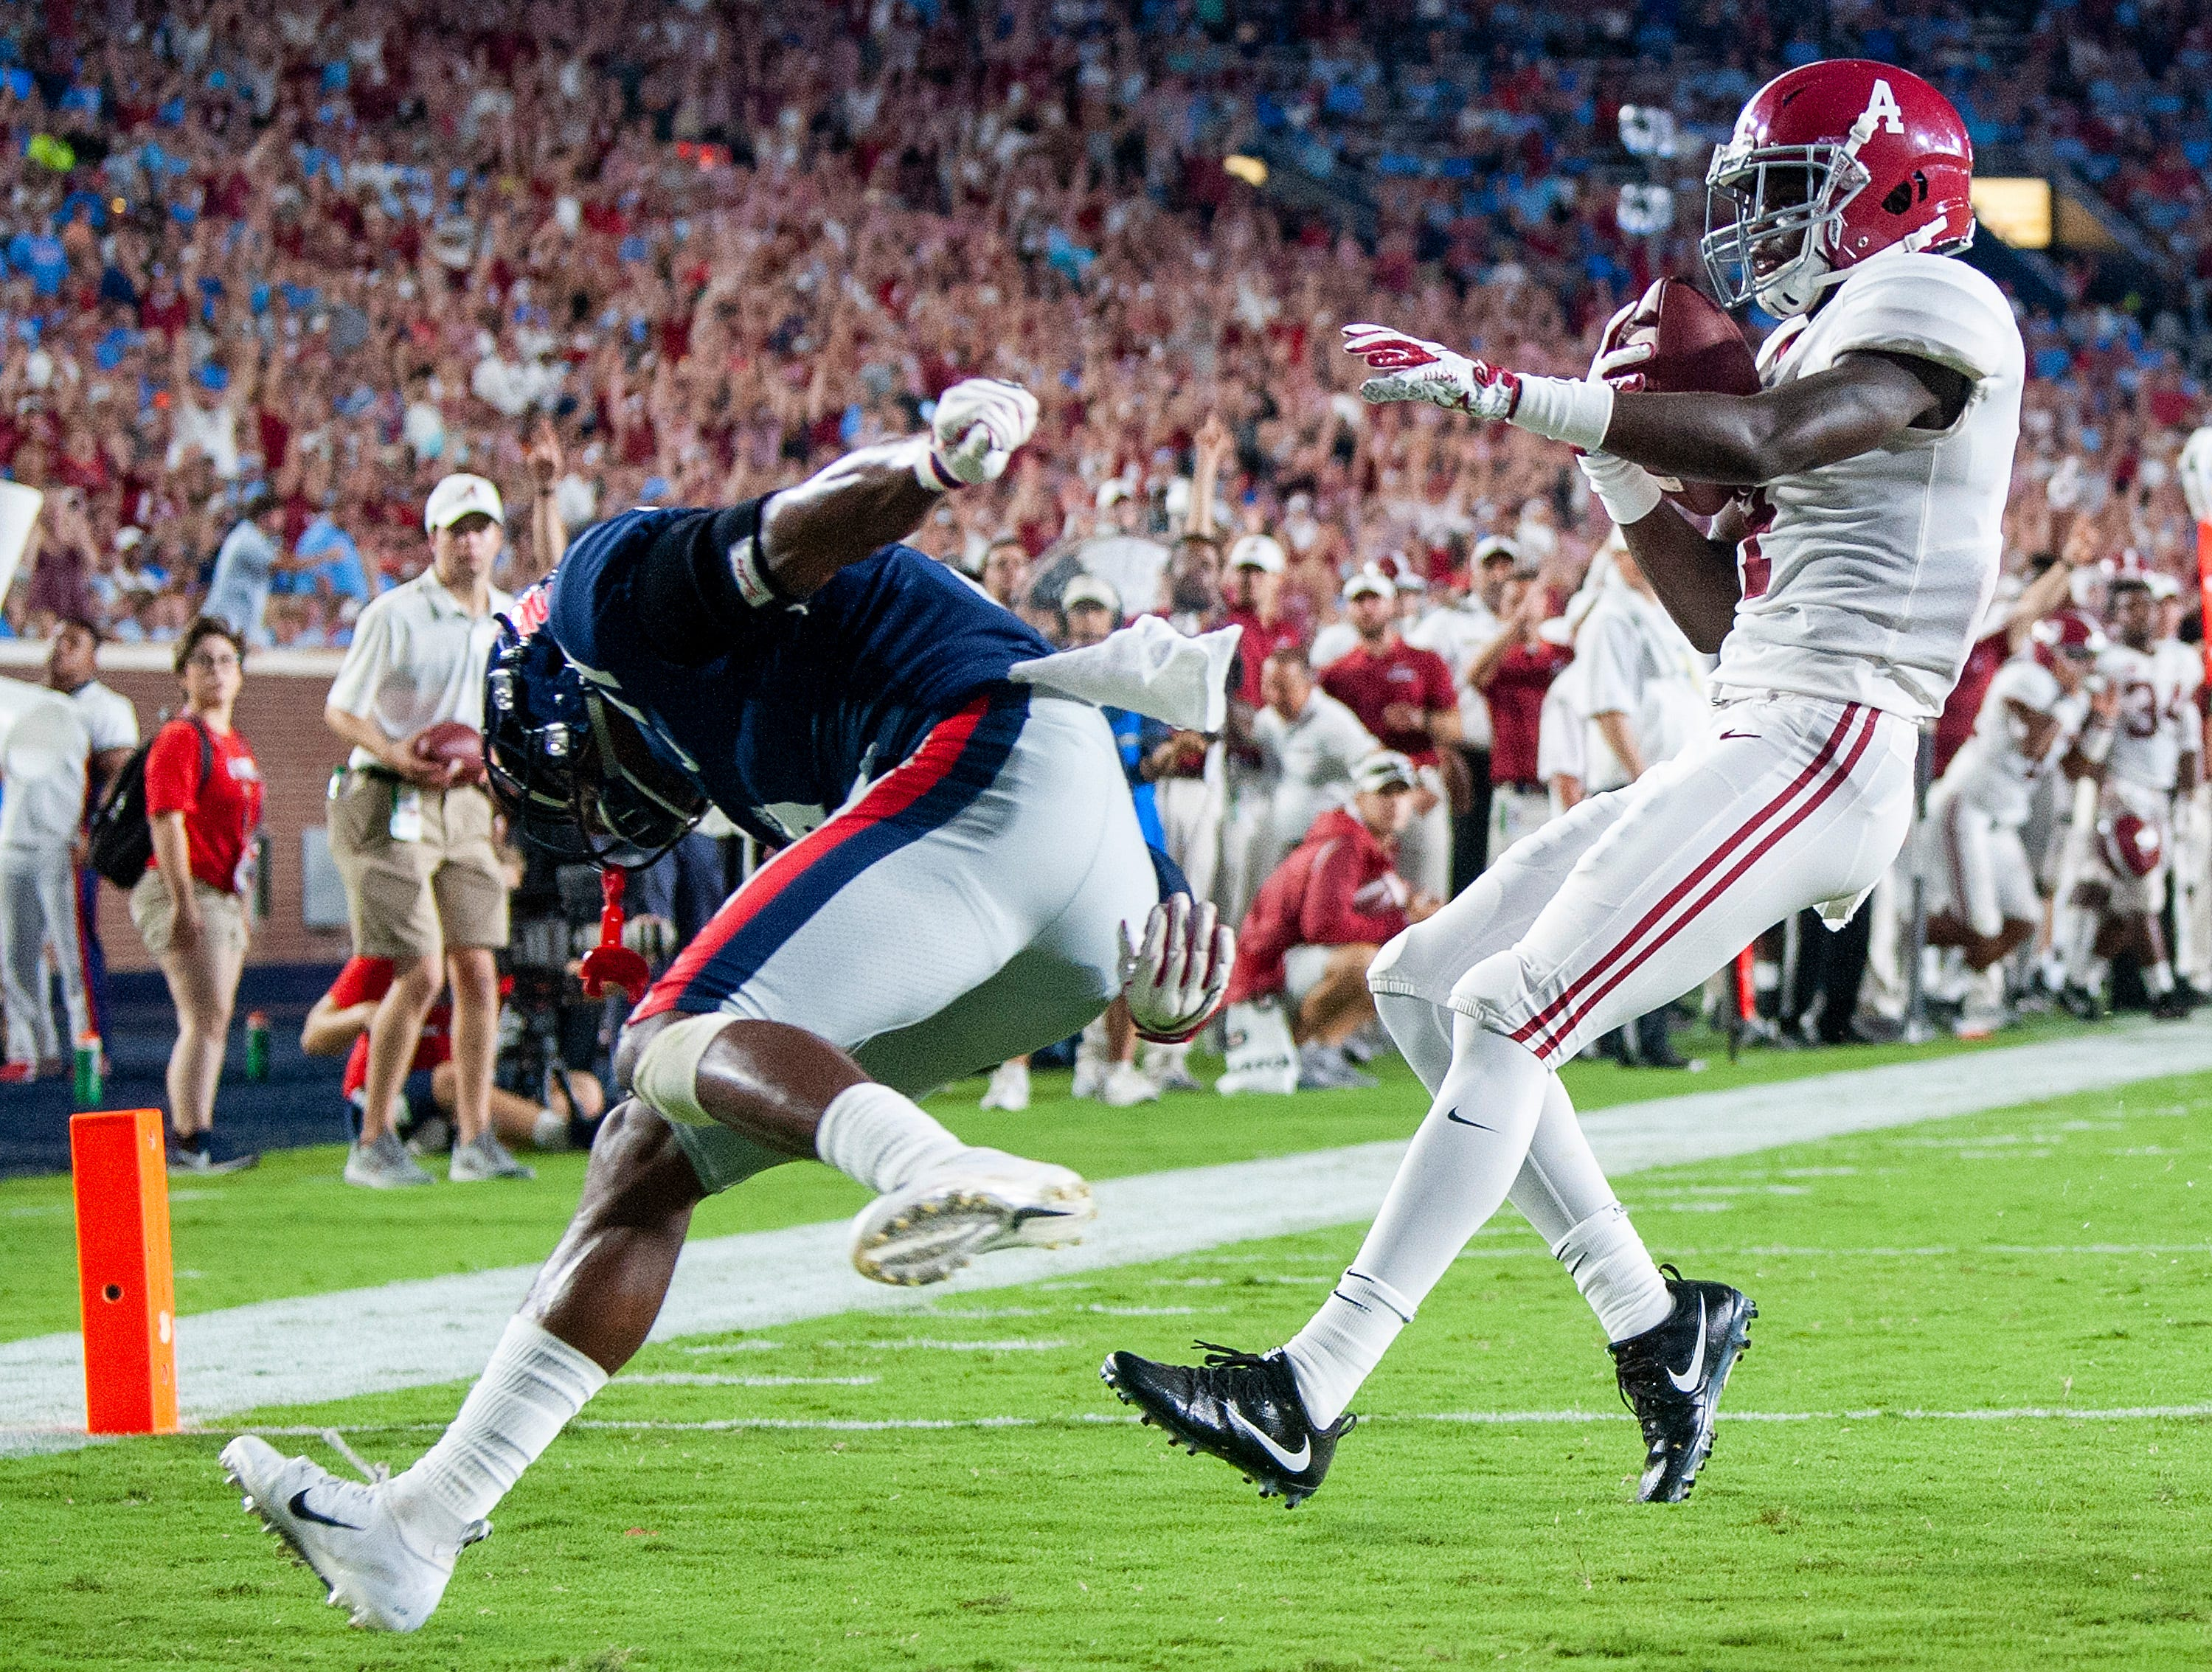 Alabama wide receiver Jerry Jeudy (4) scores a touchdown against Ole Miss defensive back Montrell Custis (2) In first half action in Oxford, Ms., on Saturday September 15, 2018.